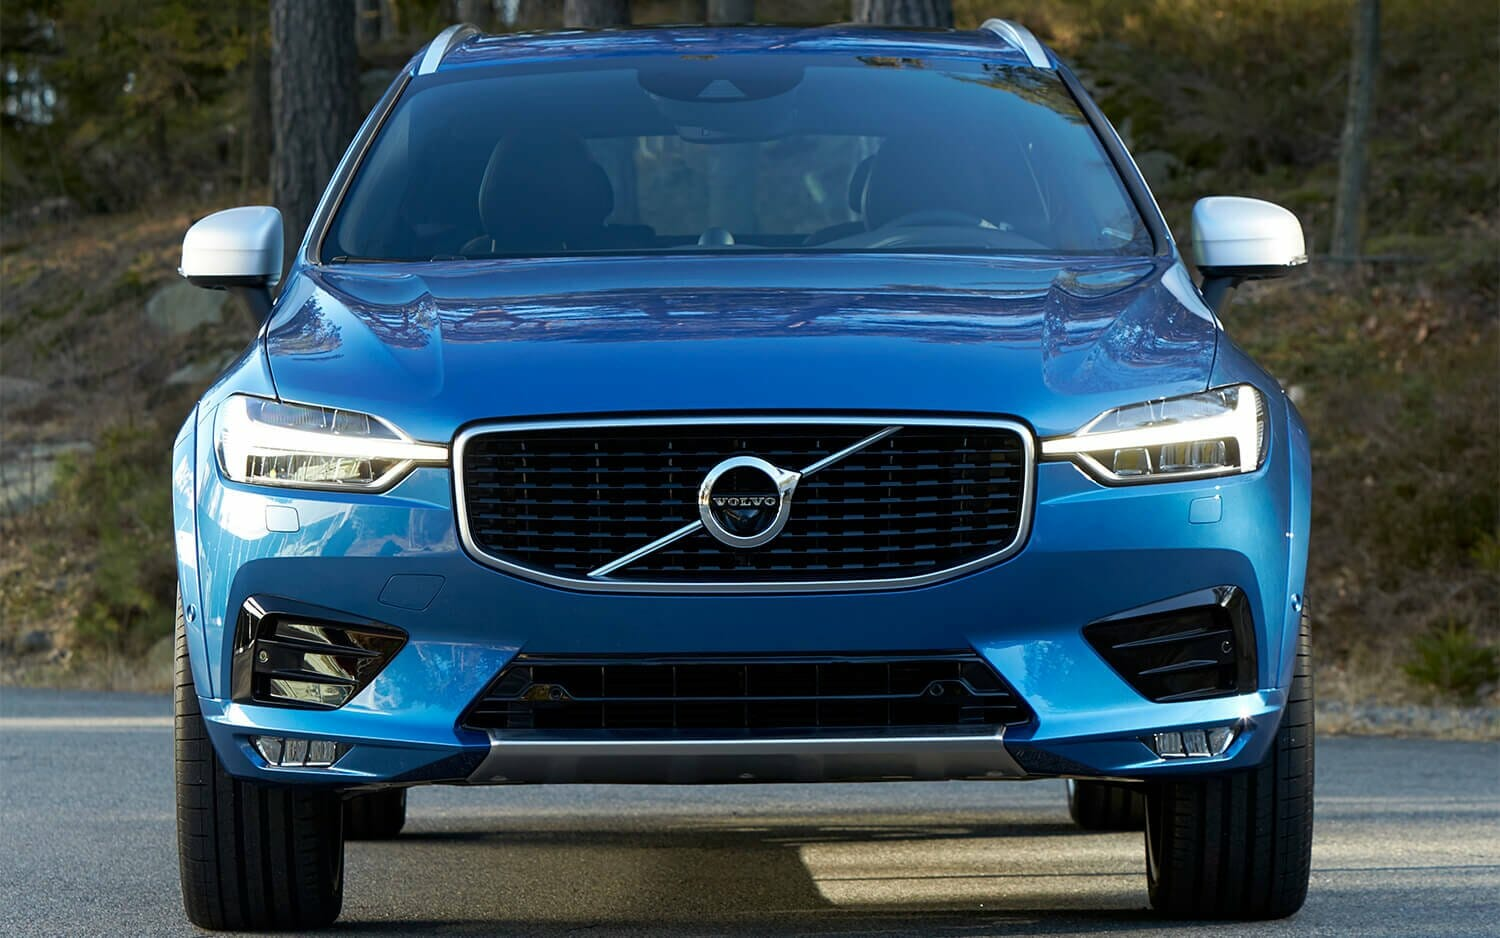 Safest car color accidents - This Is So That Mainstream Customers Can See For Themselves How The New Volvo Xc60 Will Behave During Accidents